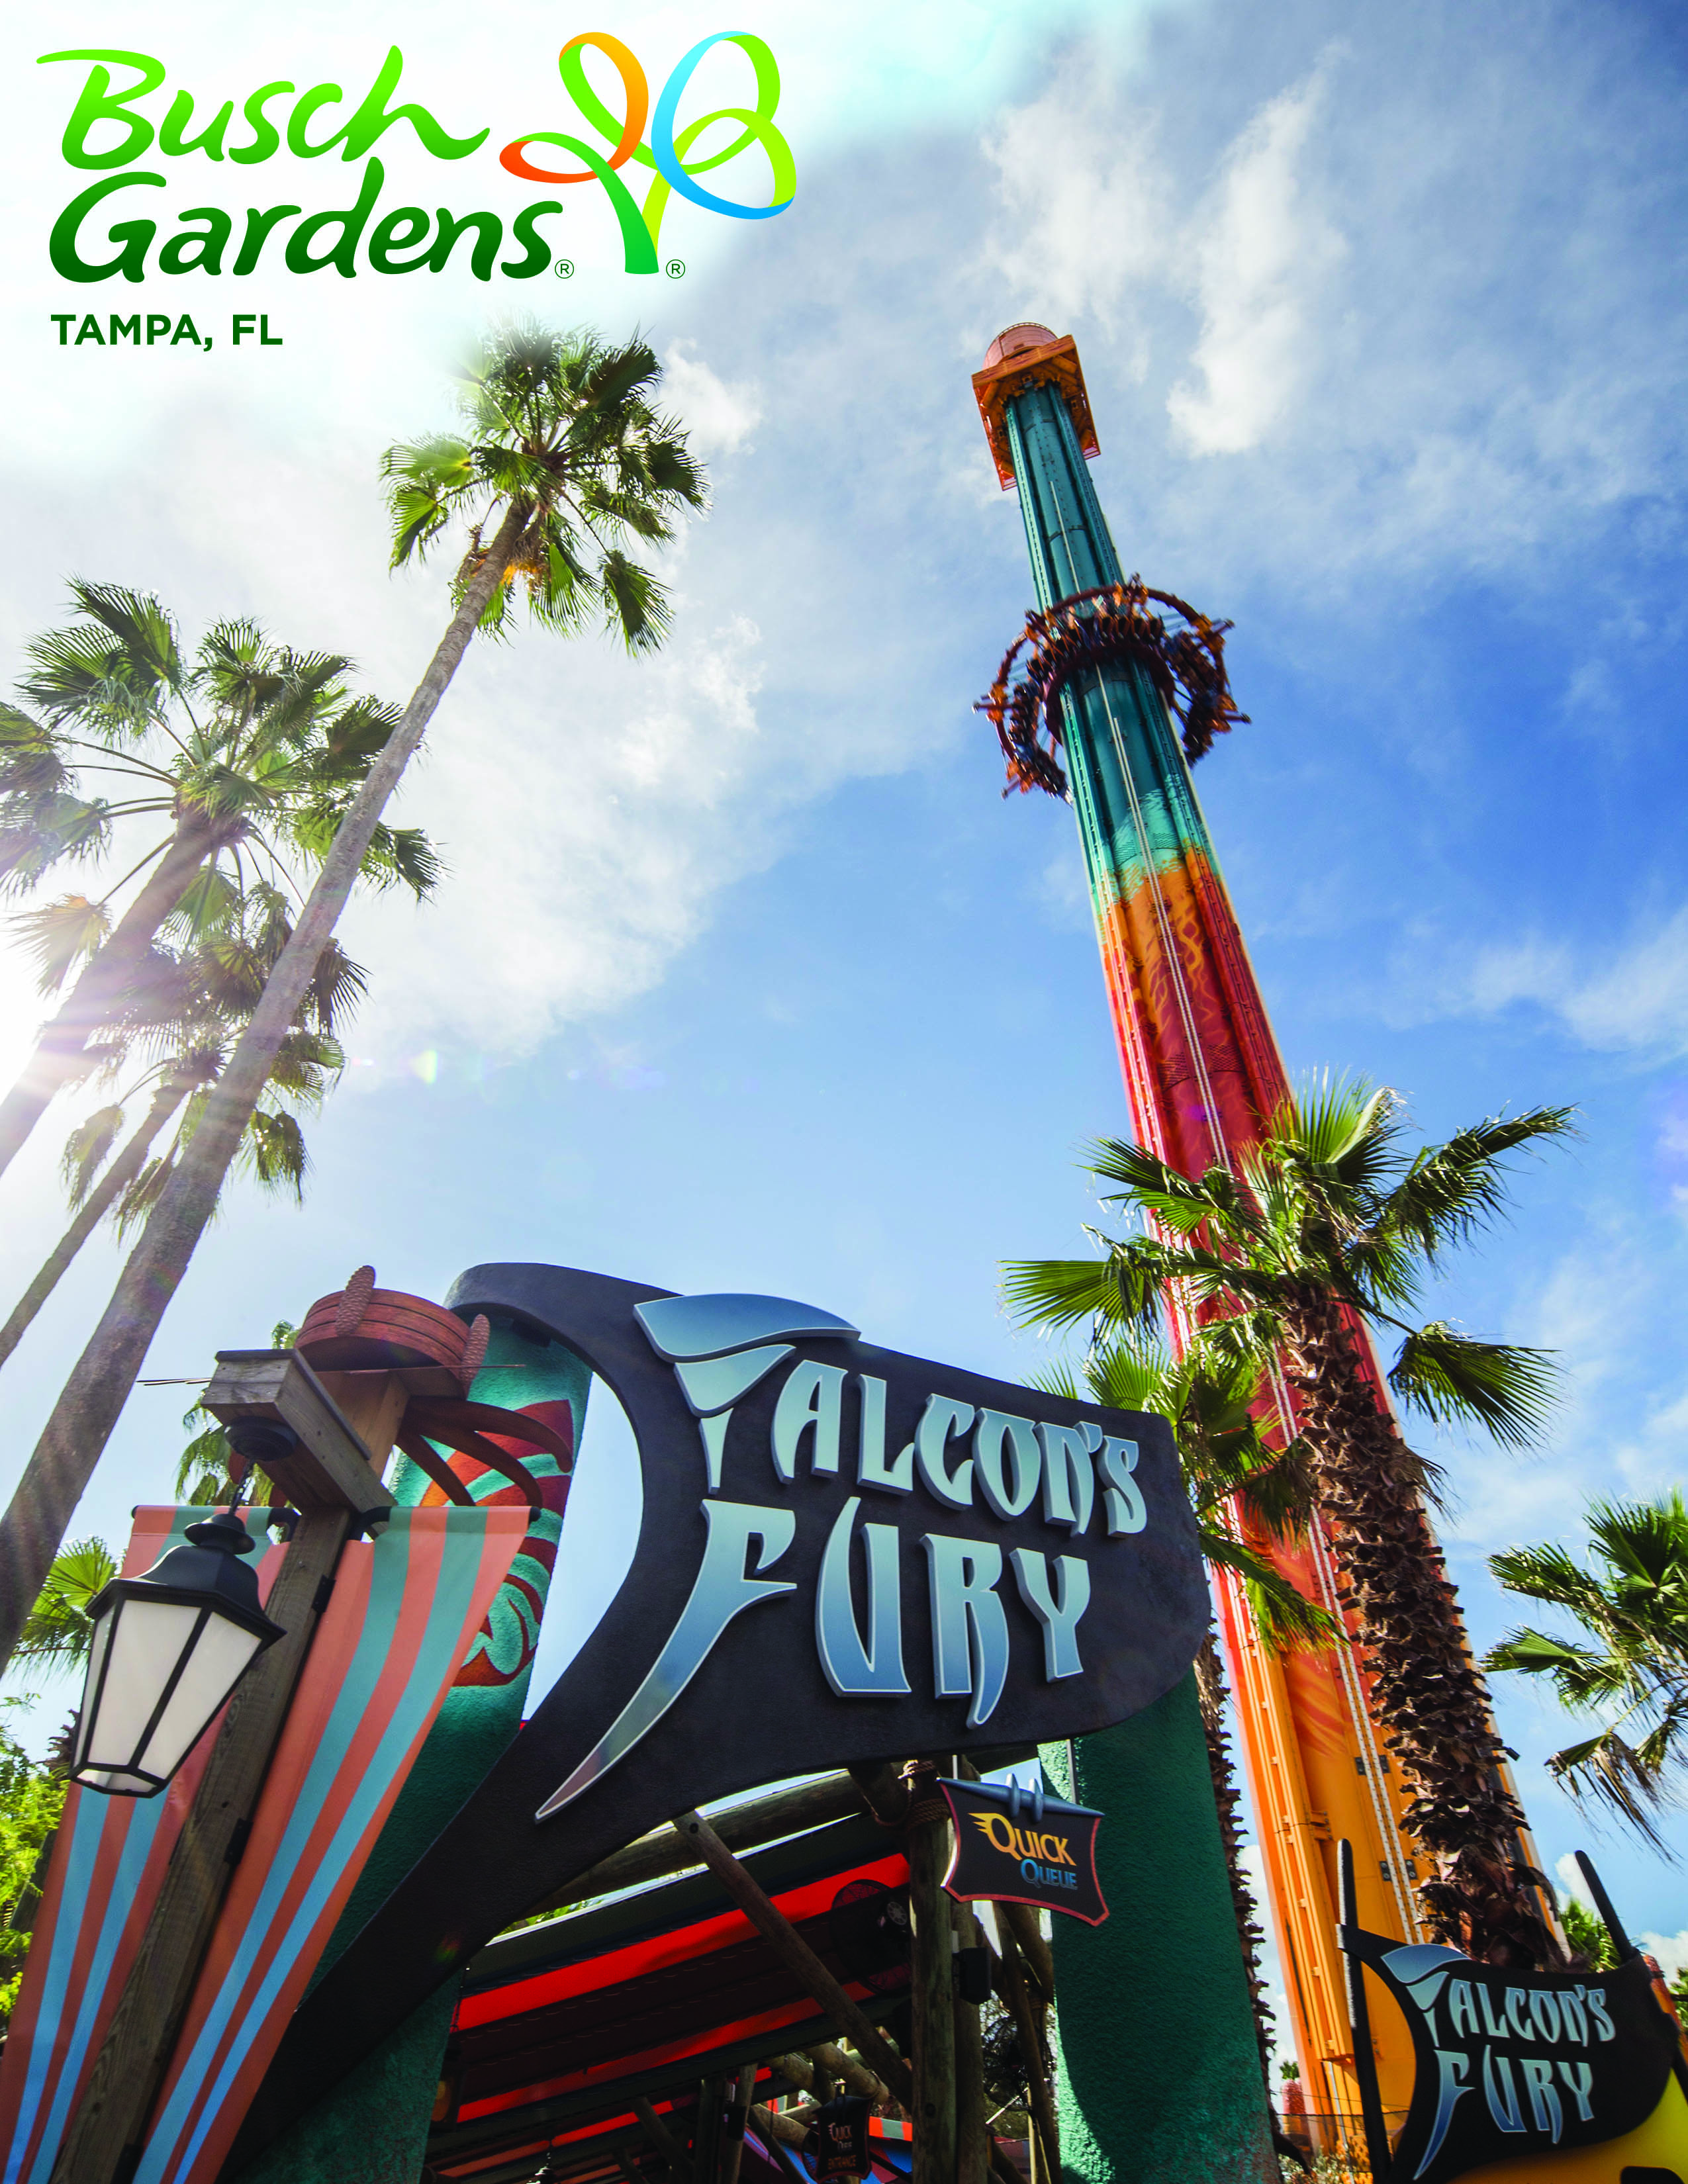 ... North Americau0027s Tallest Freestanding Drop Tower Falconu0027s Fury  Officially Opened Earlier This Month At Busch Gardens In Tampa, Florida.